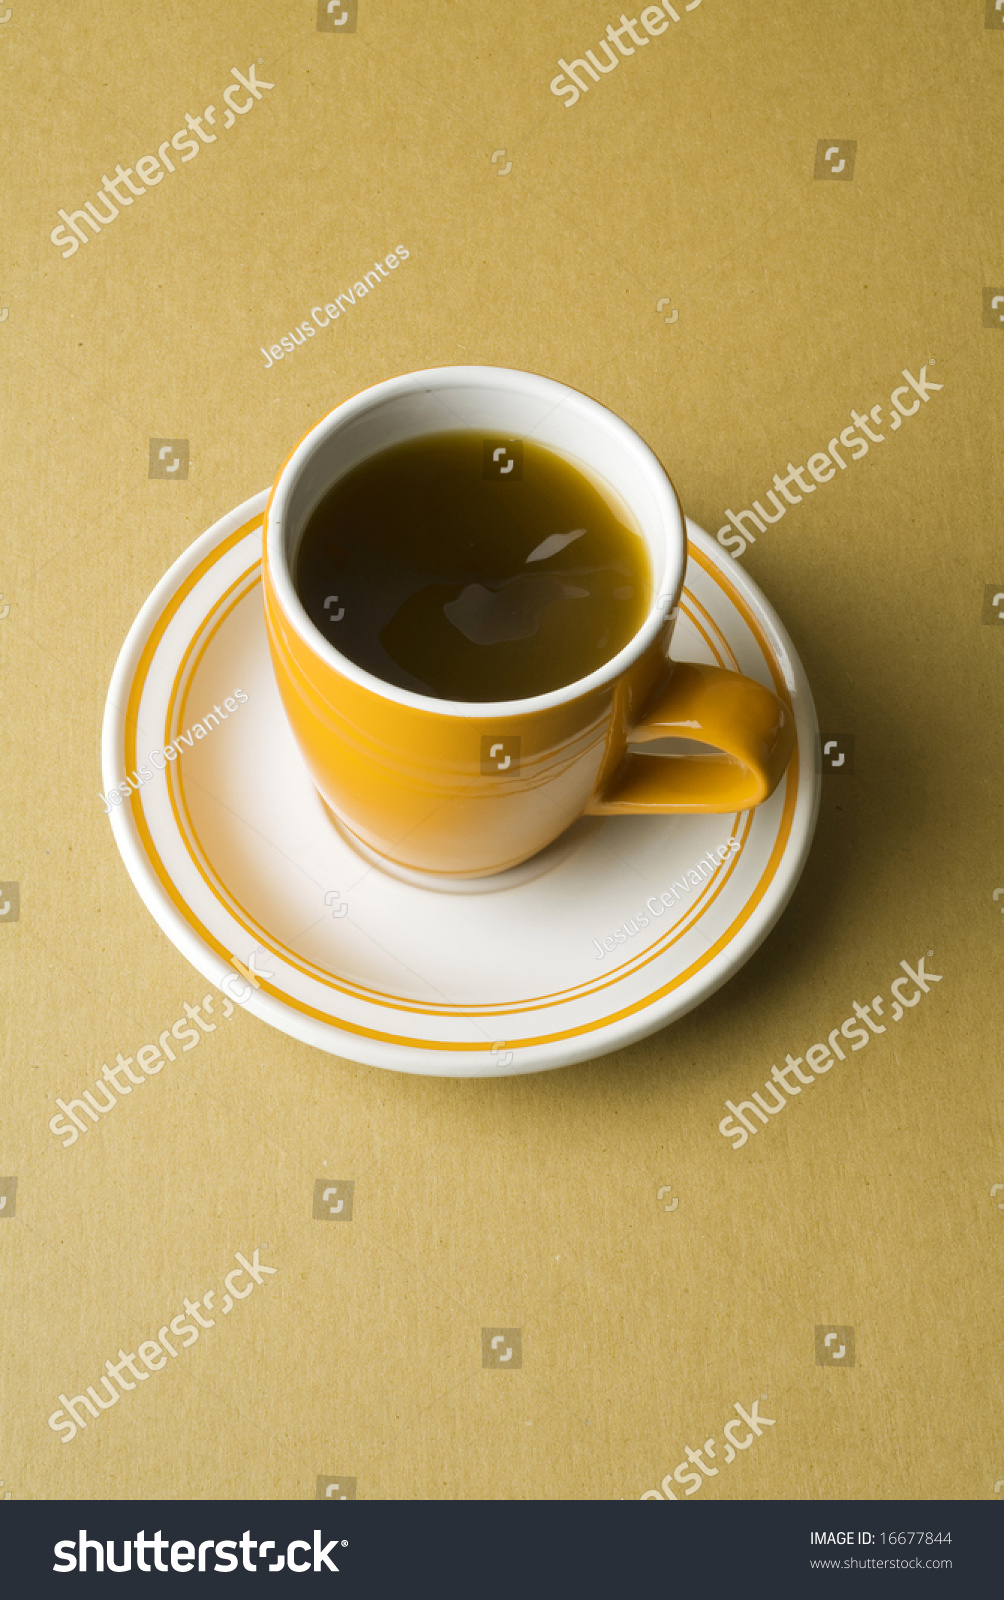 An orange coffee cup and plate